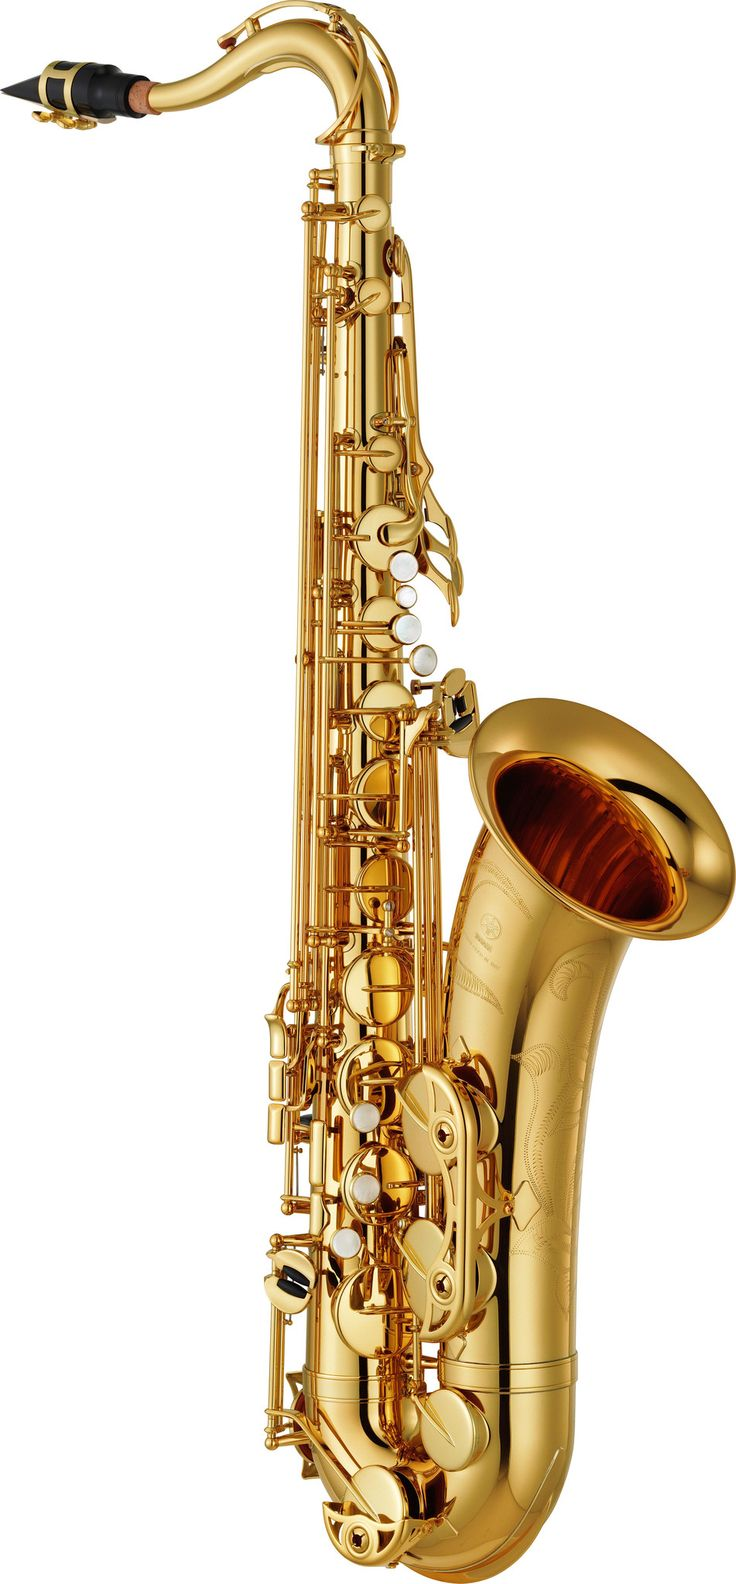 Yamaha YTS-480 Intermediate Series Tenor Saxophone